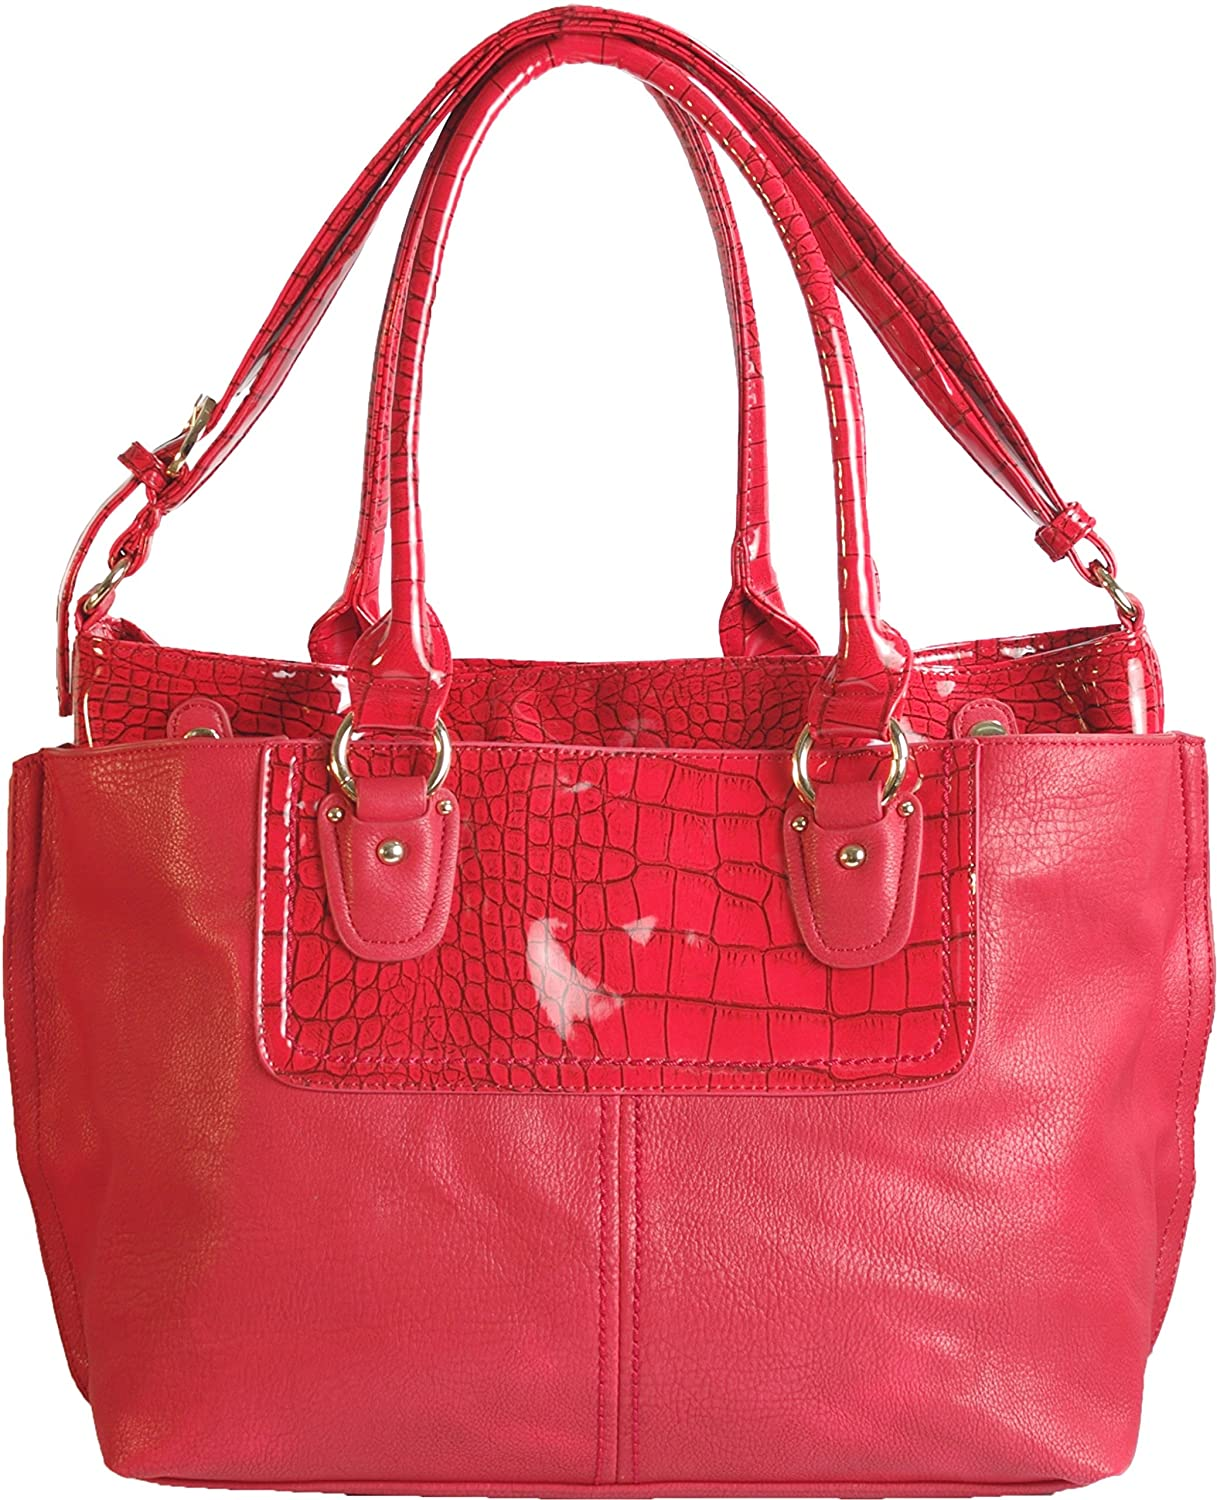 Authentic Arcadia Crocodile Two Bags In One: Tote Handbag with Matching Wallet Set: GN5688-RD&GNW8099-RD